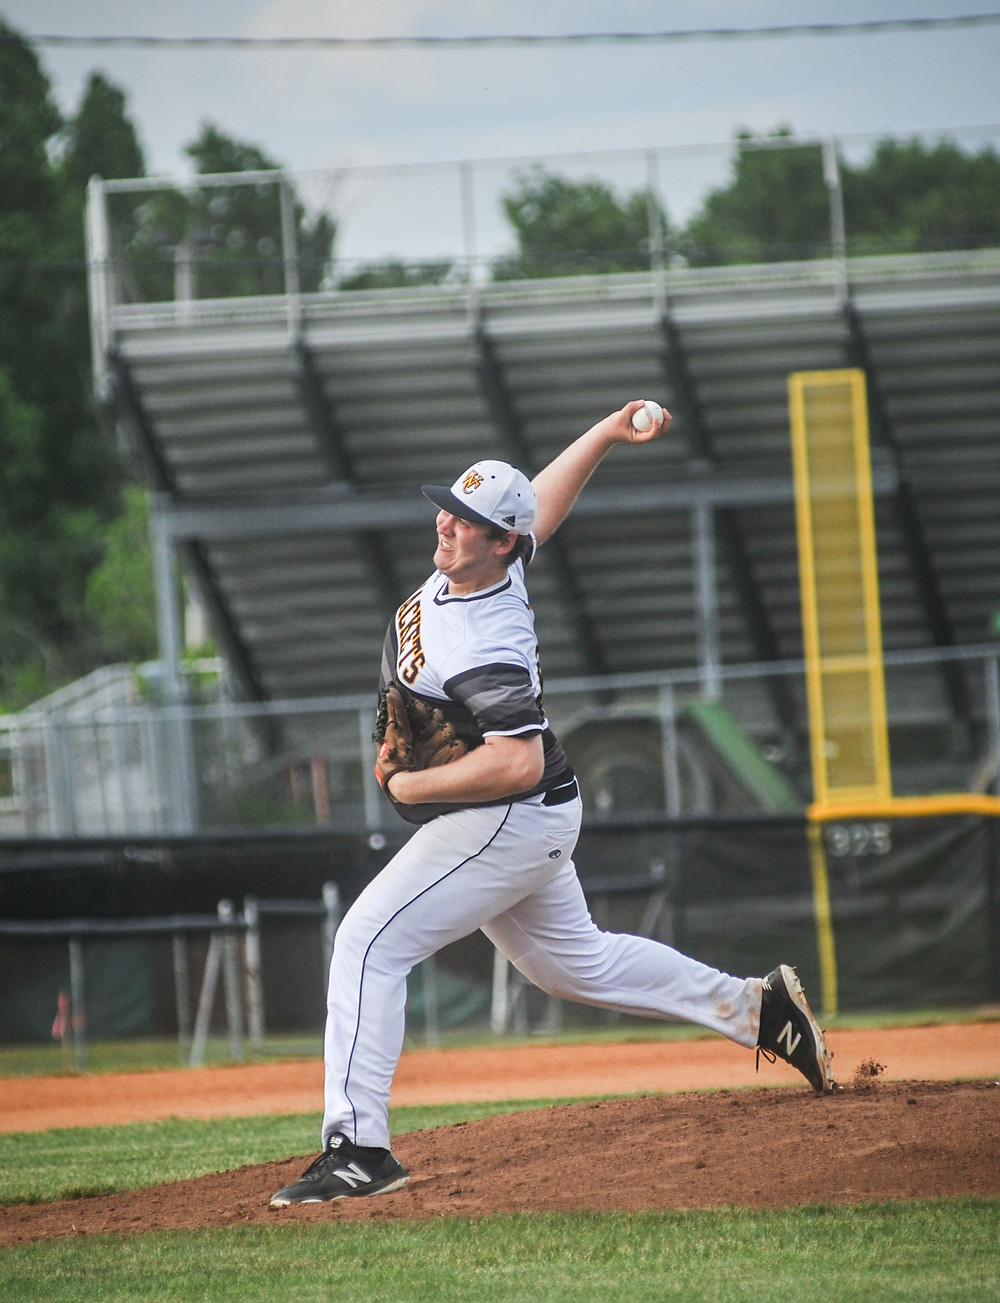 WCHS SENIOR COLLIN MURRAY pitched six scoreless innings and struck out 10 batters in the district tournament semifinal May 21. (Photo by Bill Caine)